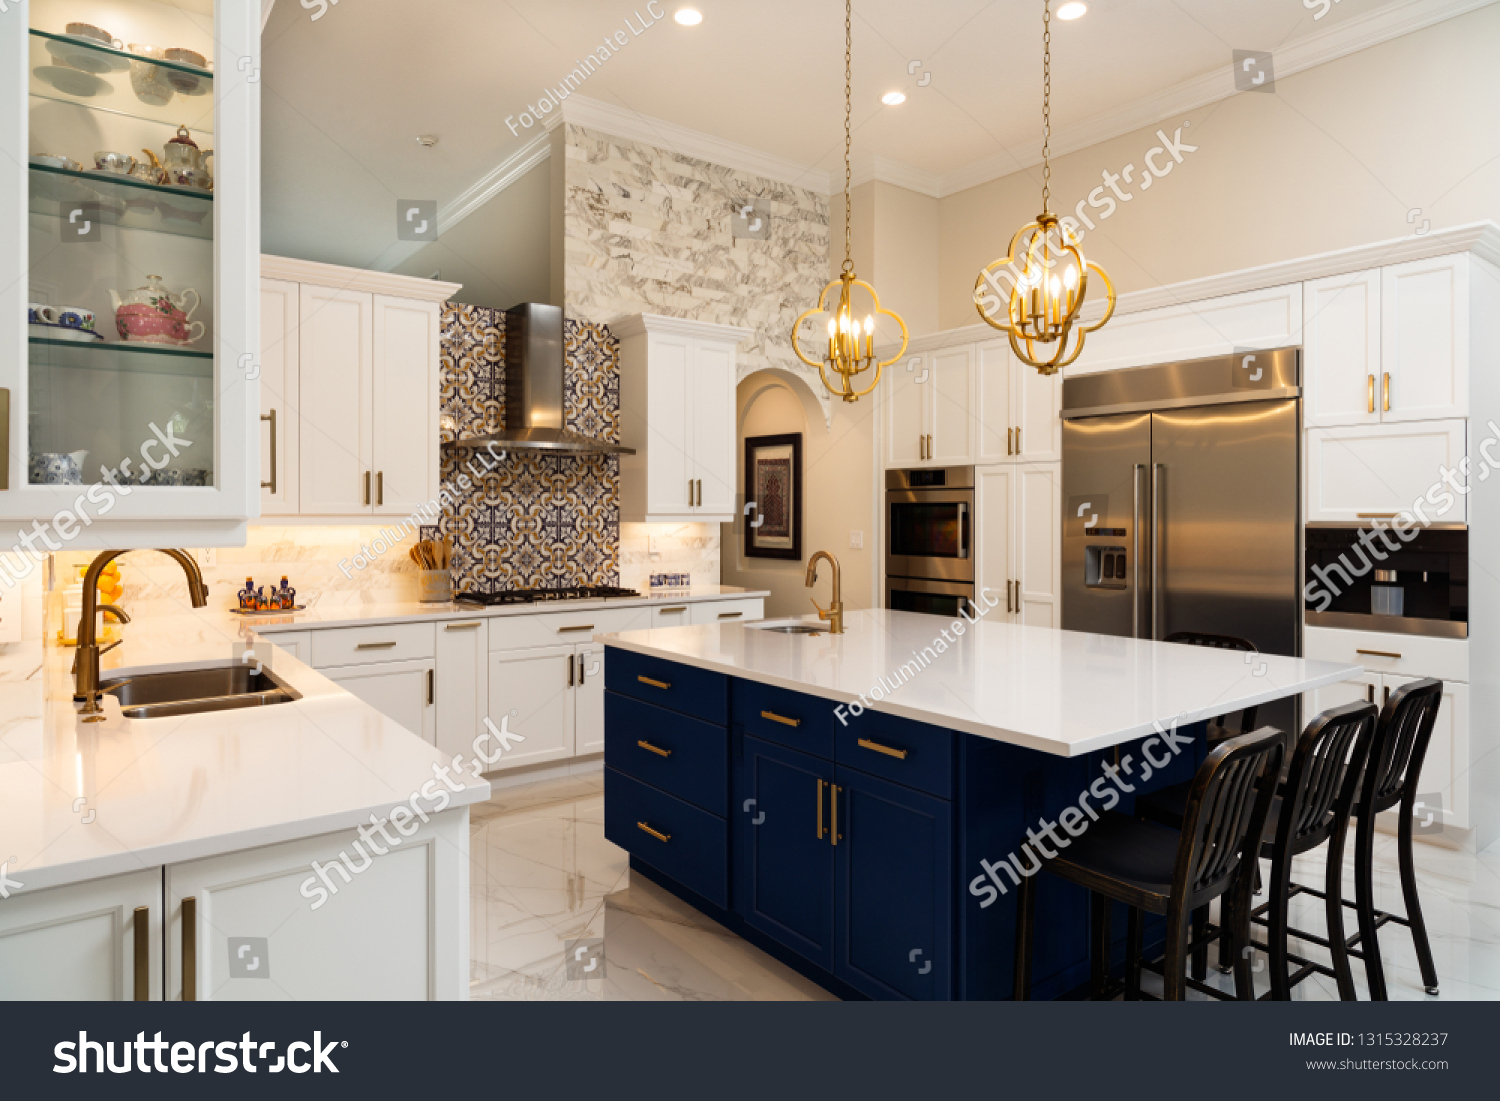 Beautiful luxury home kitchen with white cabinets. #1315328237